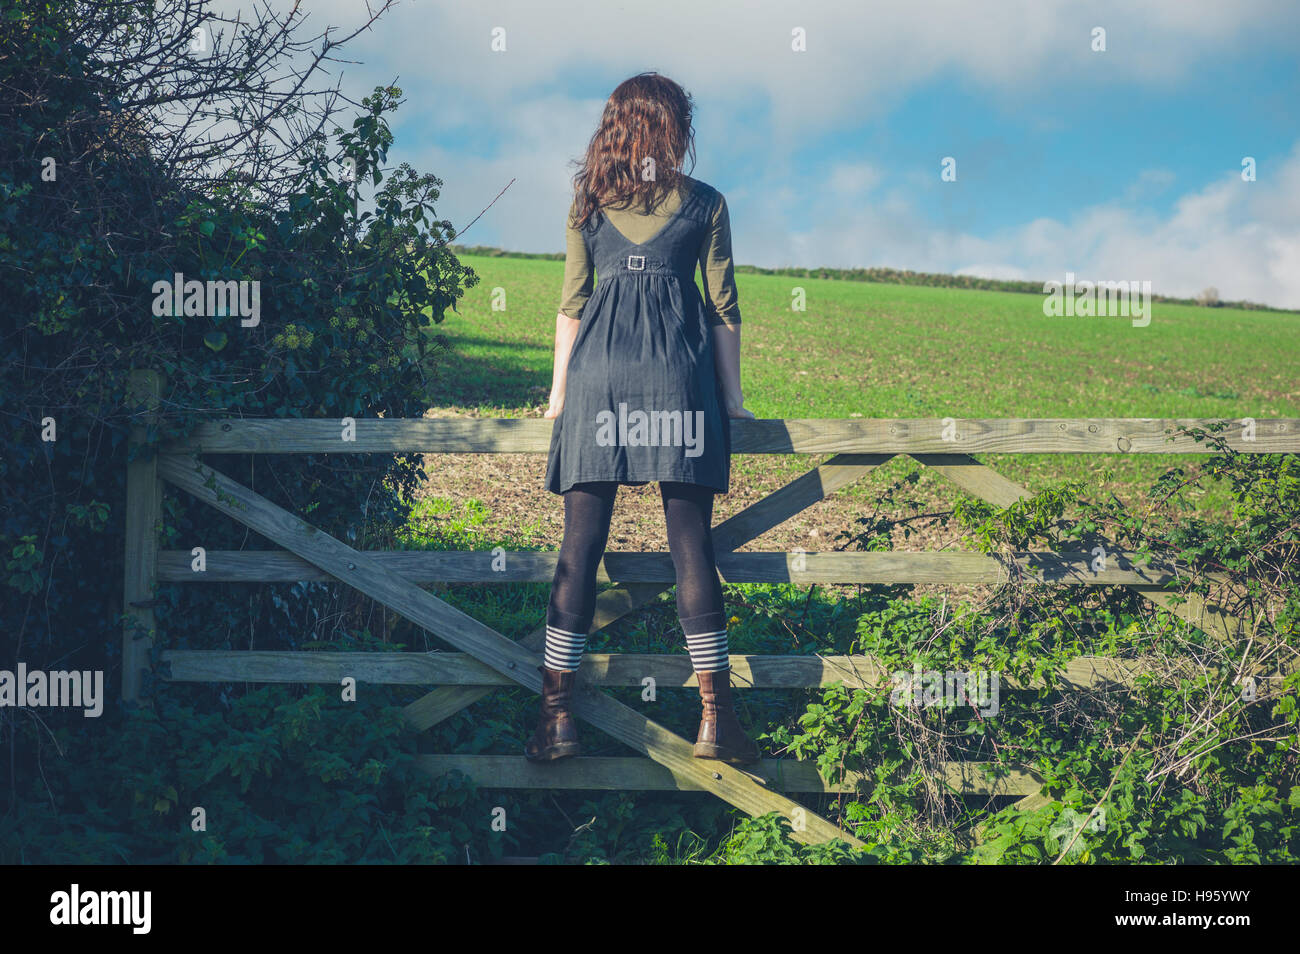 A young woman is standing on a gate in the countryside and is looking at the landscape on a sunny day - Stock Image